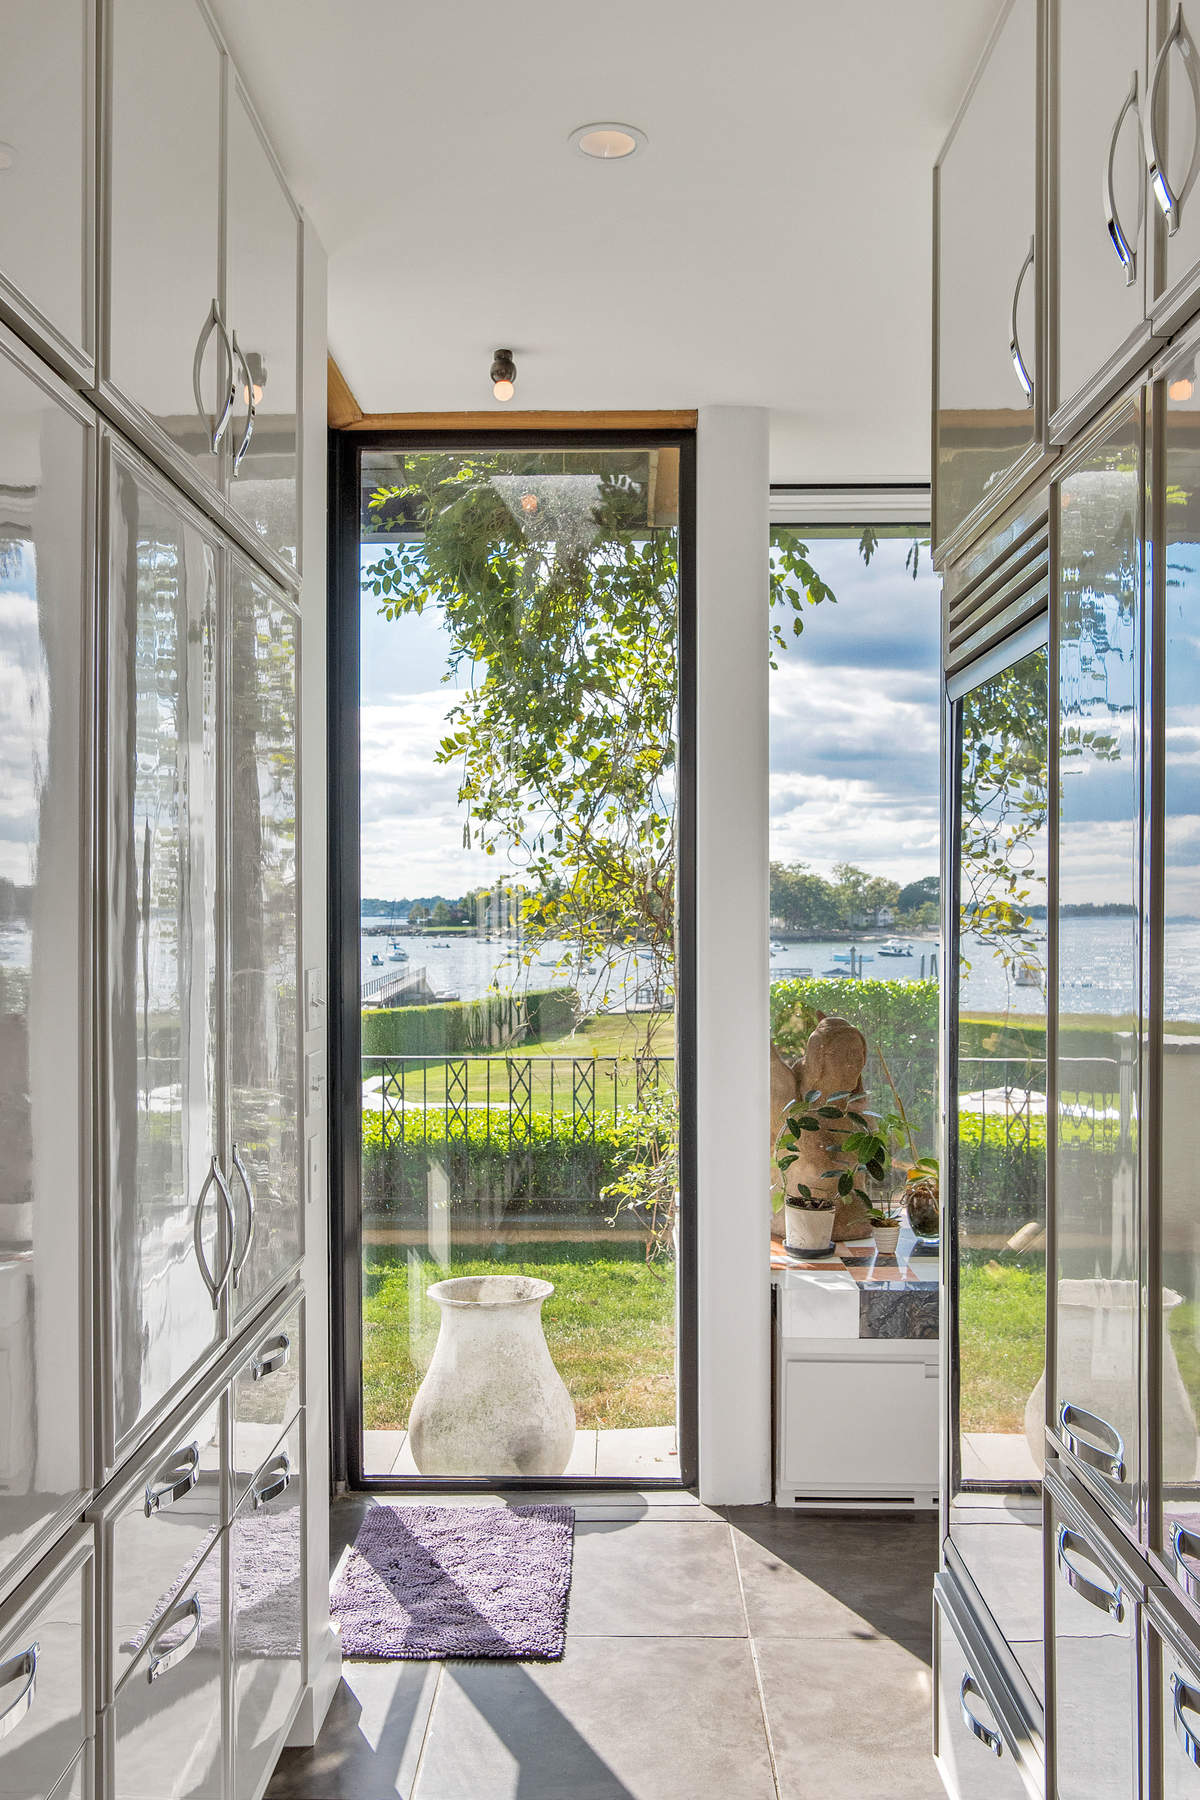 Additional photo for property listing at 163 Pear Tree Point Road 163 Pear Tree Point Road Darien, Connecticut 06820 United States